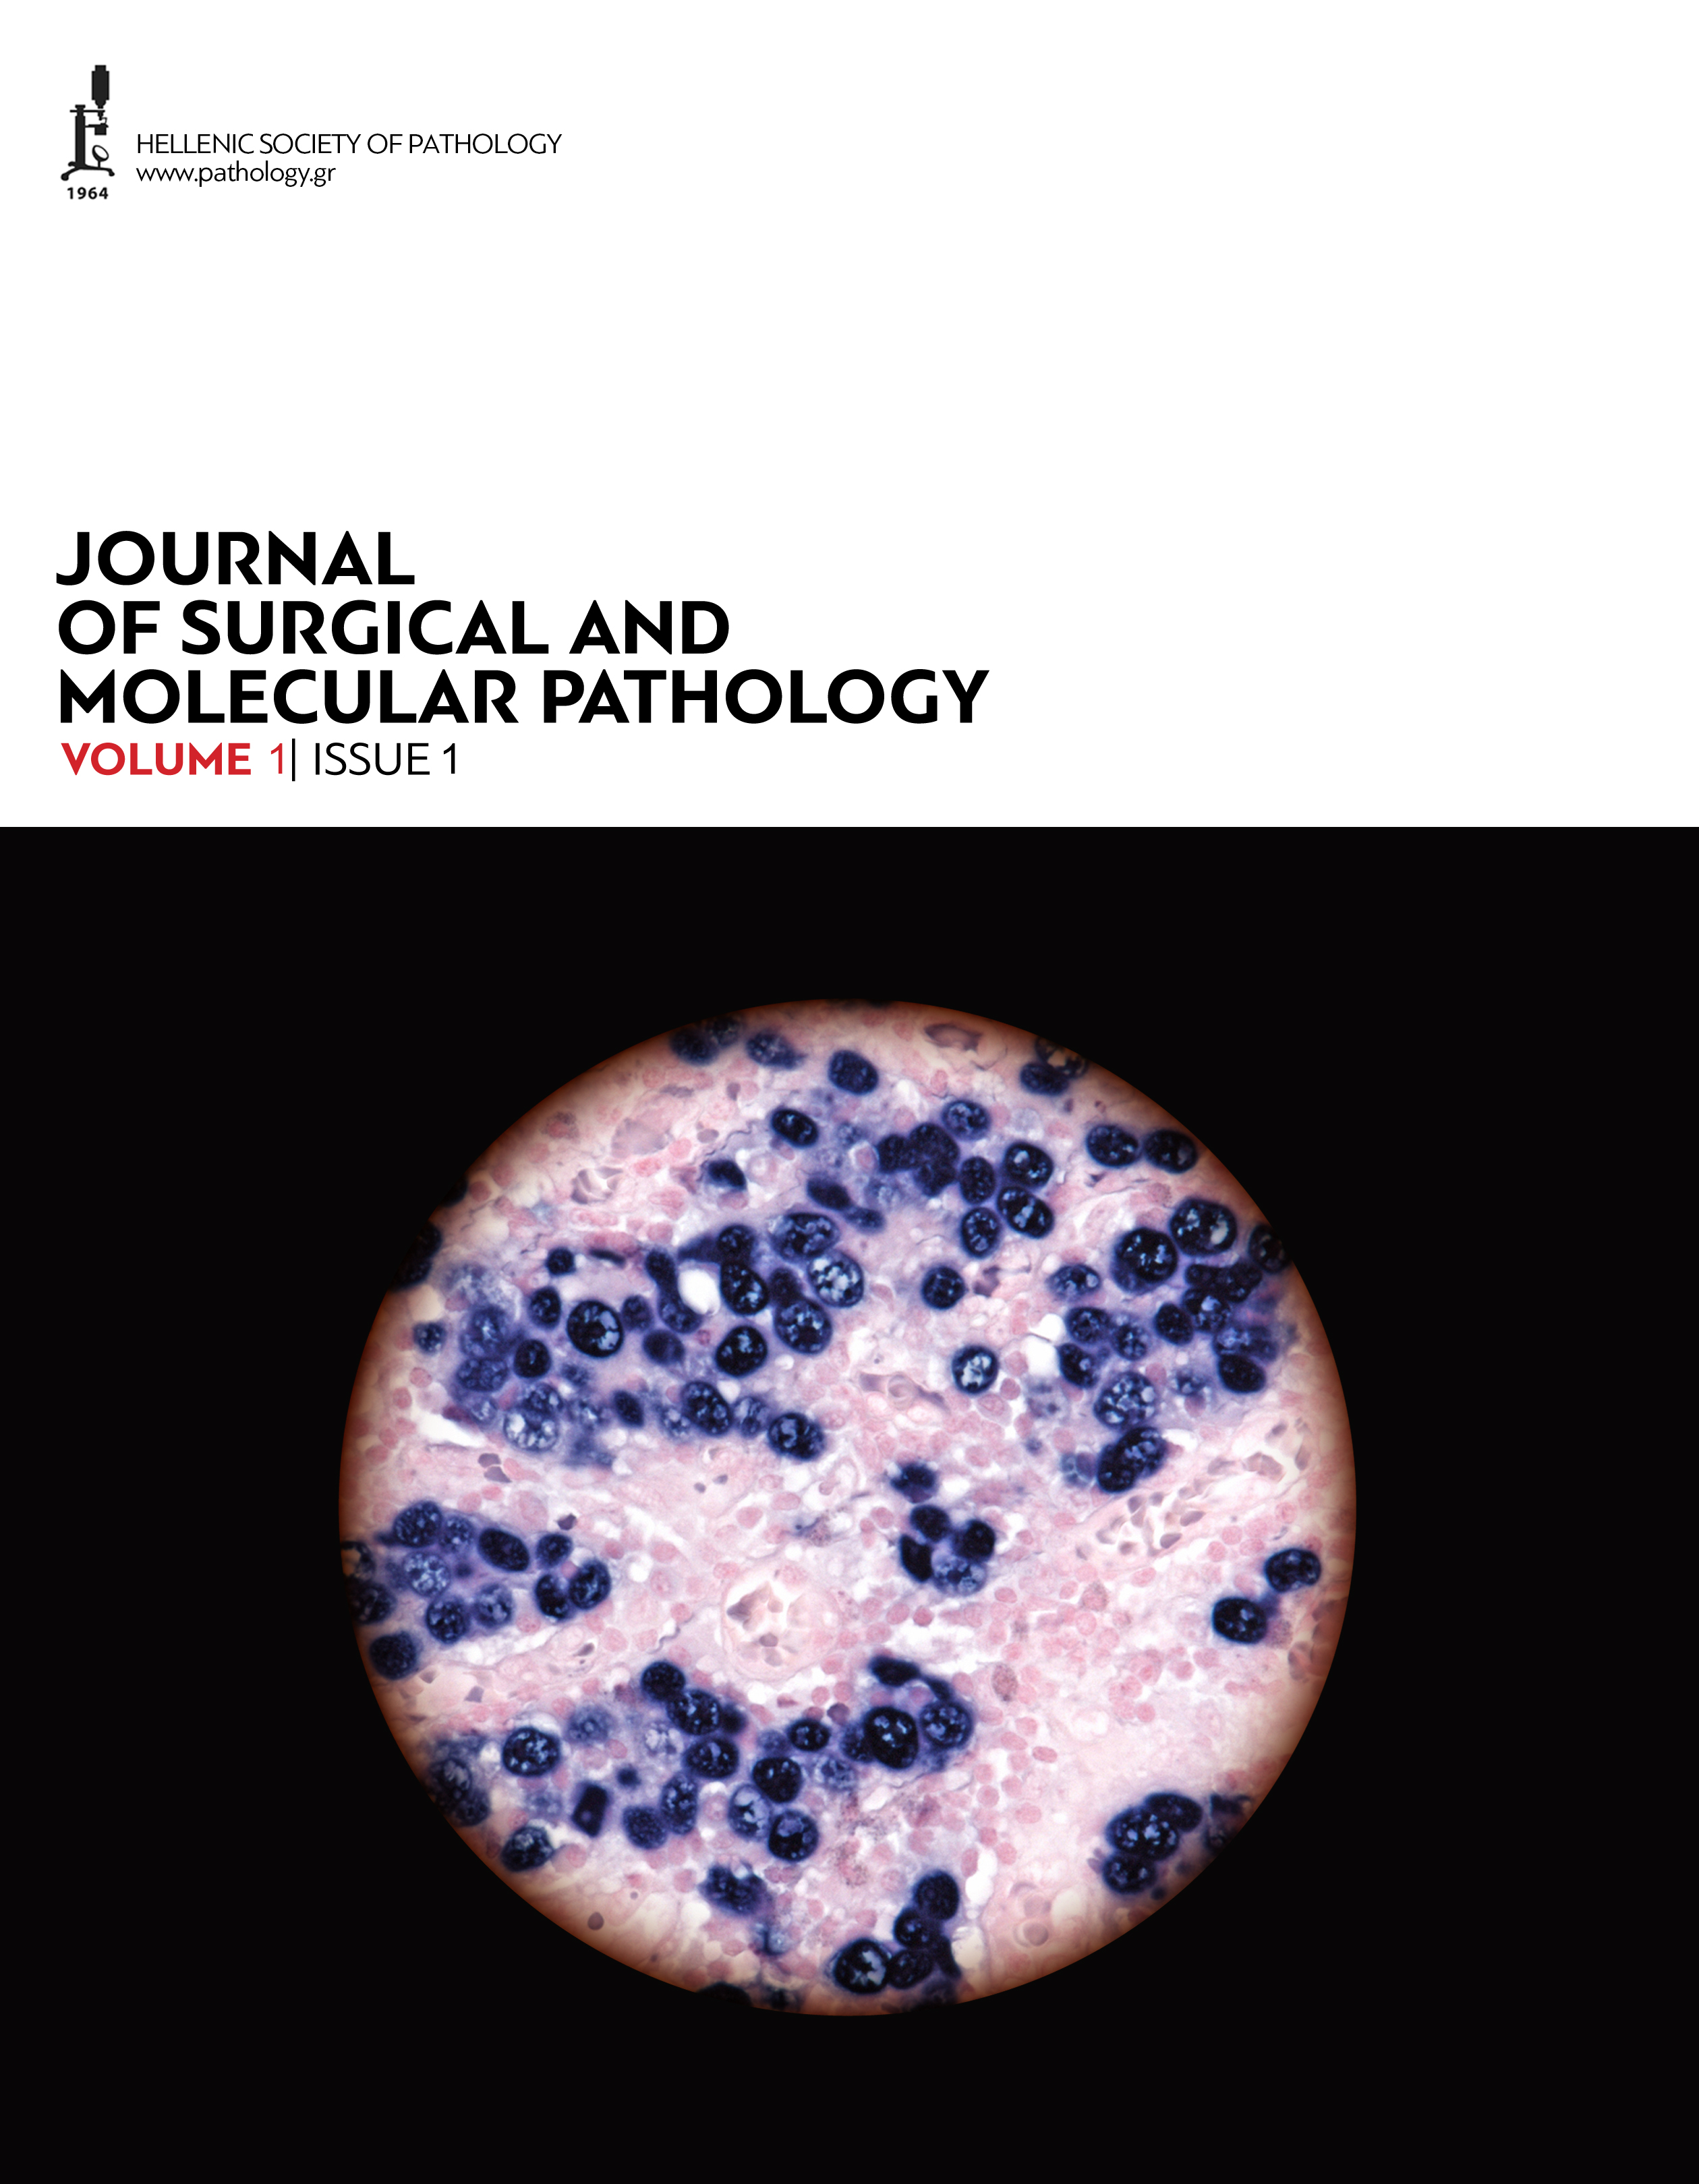 Journal of Surgical and Molecular Pathology, Volume 1, Issue 1 (2015)